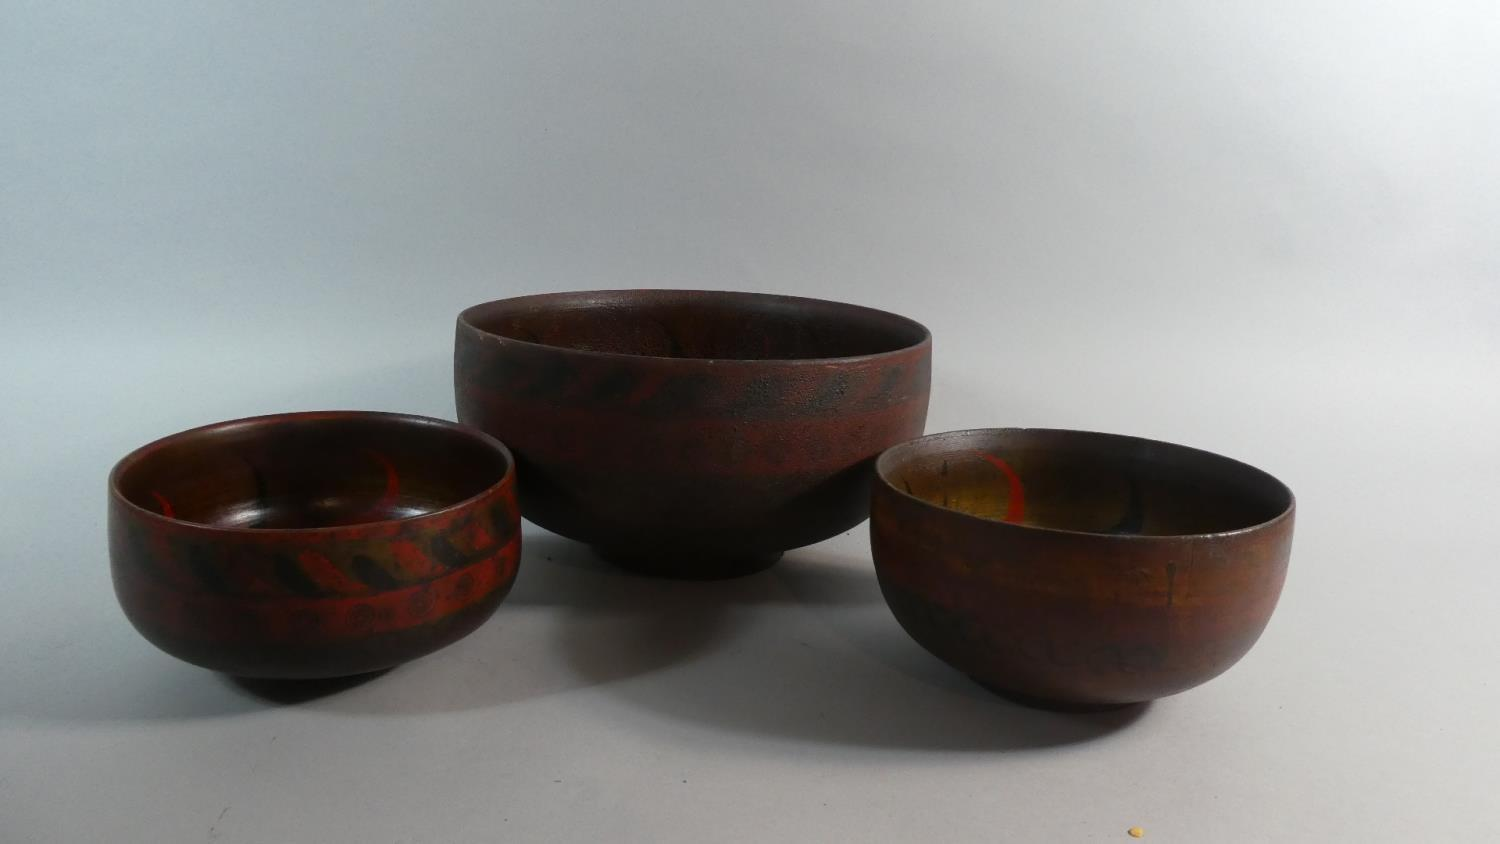 Lot 48 - A Collection of Three Early 20th Century Indonesian Wooden Bowls with Original Polychrome Painted